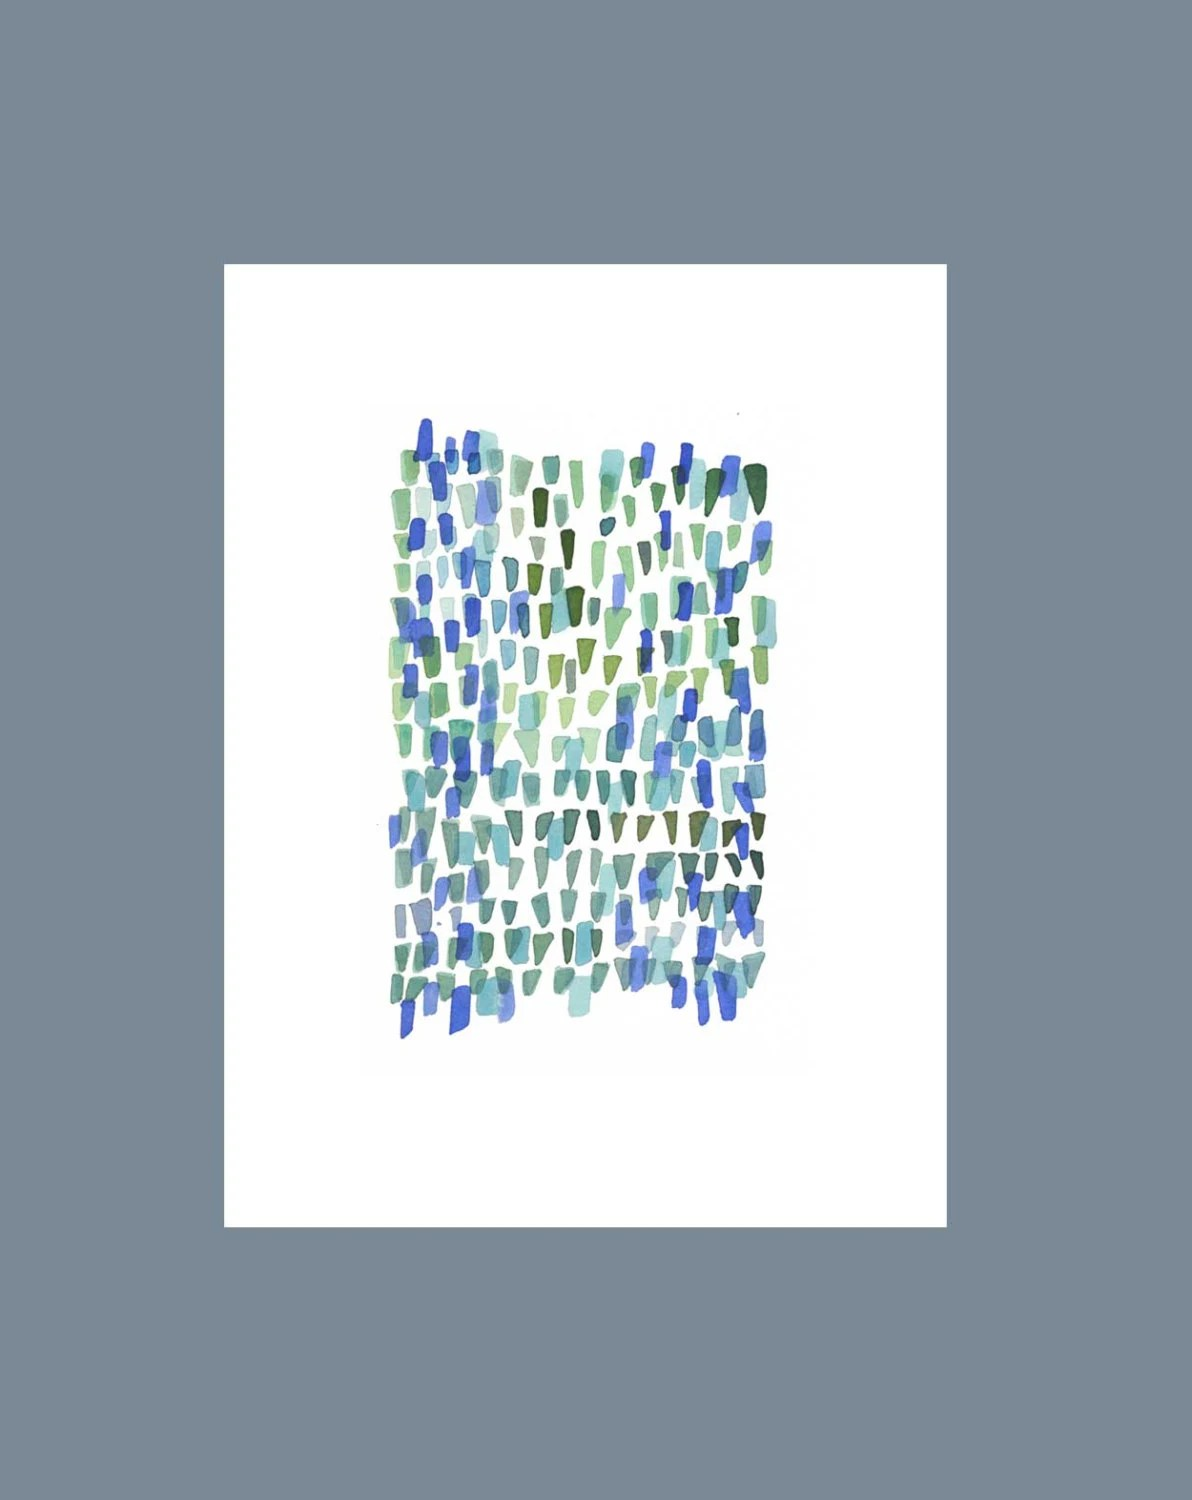 "Seaglass pieces Abstract Watercolor painting blue green white - Nautical Home decor 9 x 12"" - LouiseArtStudio"